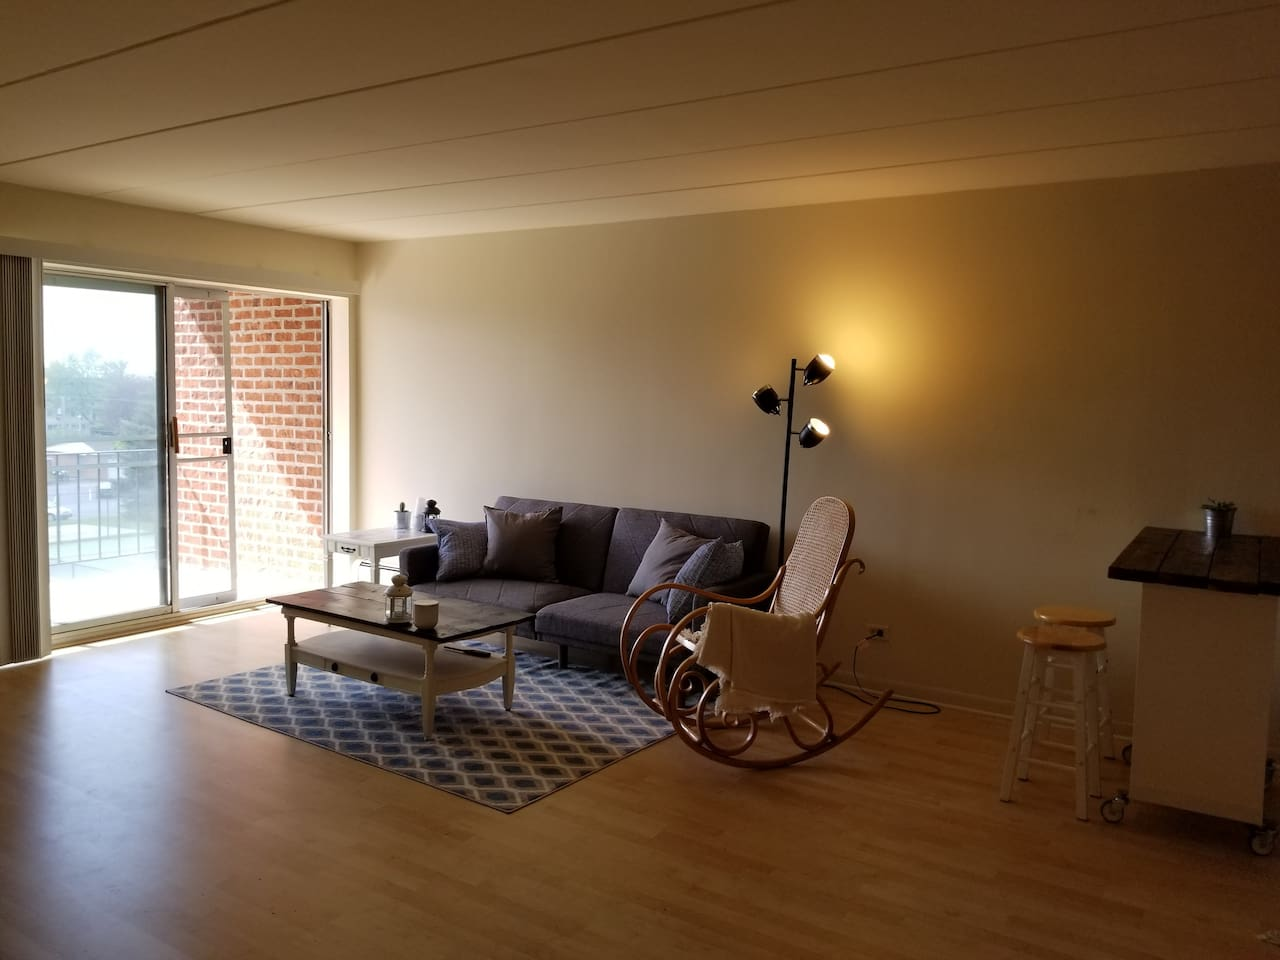 Guest will be stay at living room. We separate living room by curtain, so living room is only for guest. We have one futon which you can use as bed, and one queen size bed at living room.